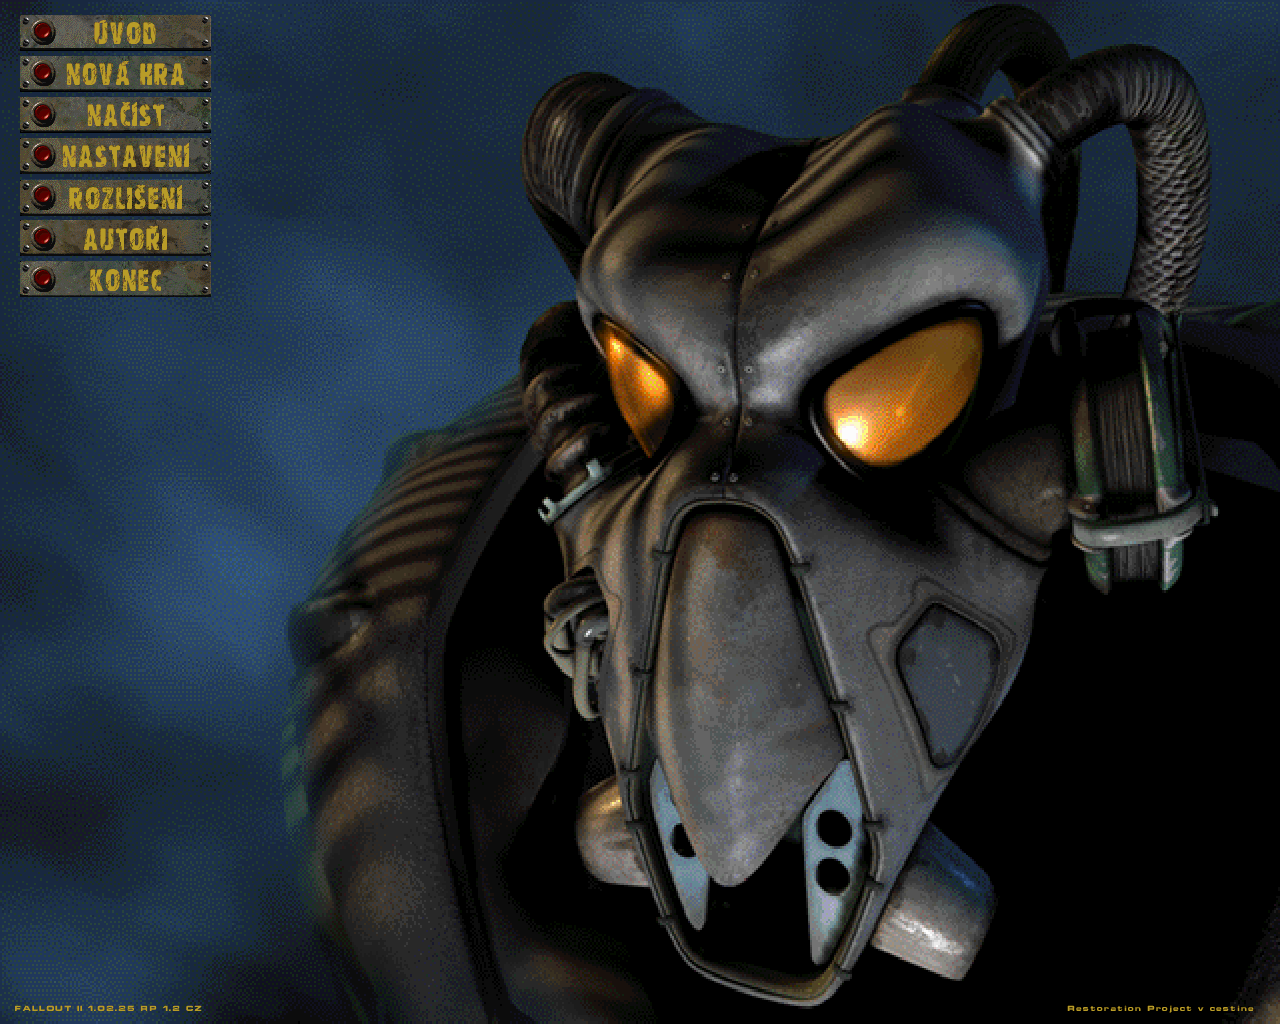 Fallout 1 2 High Resolution Patches HardForum